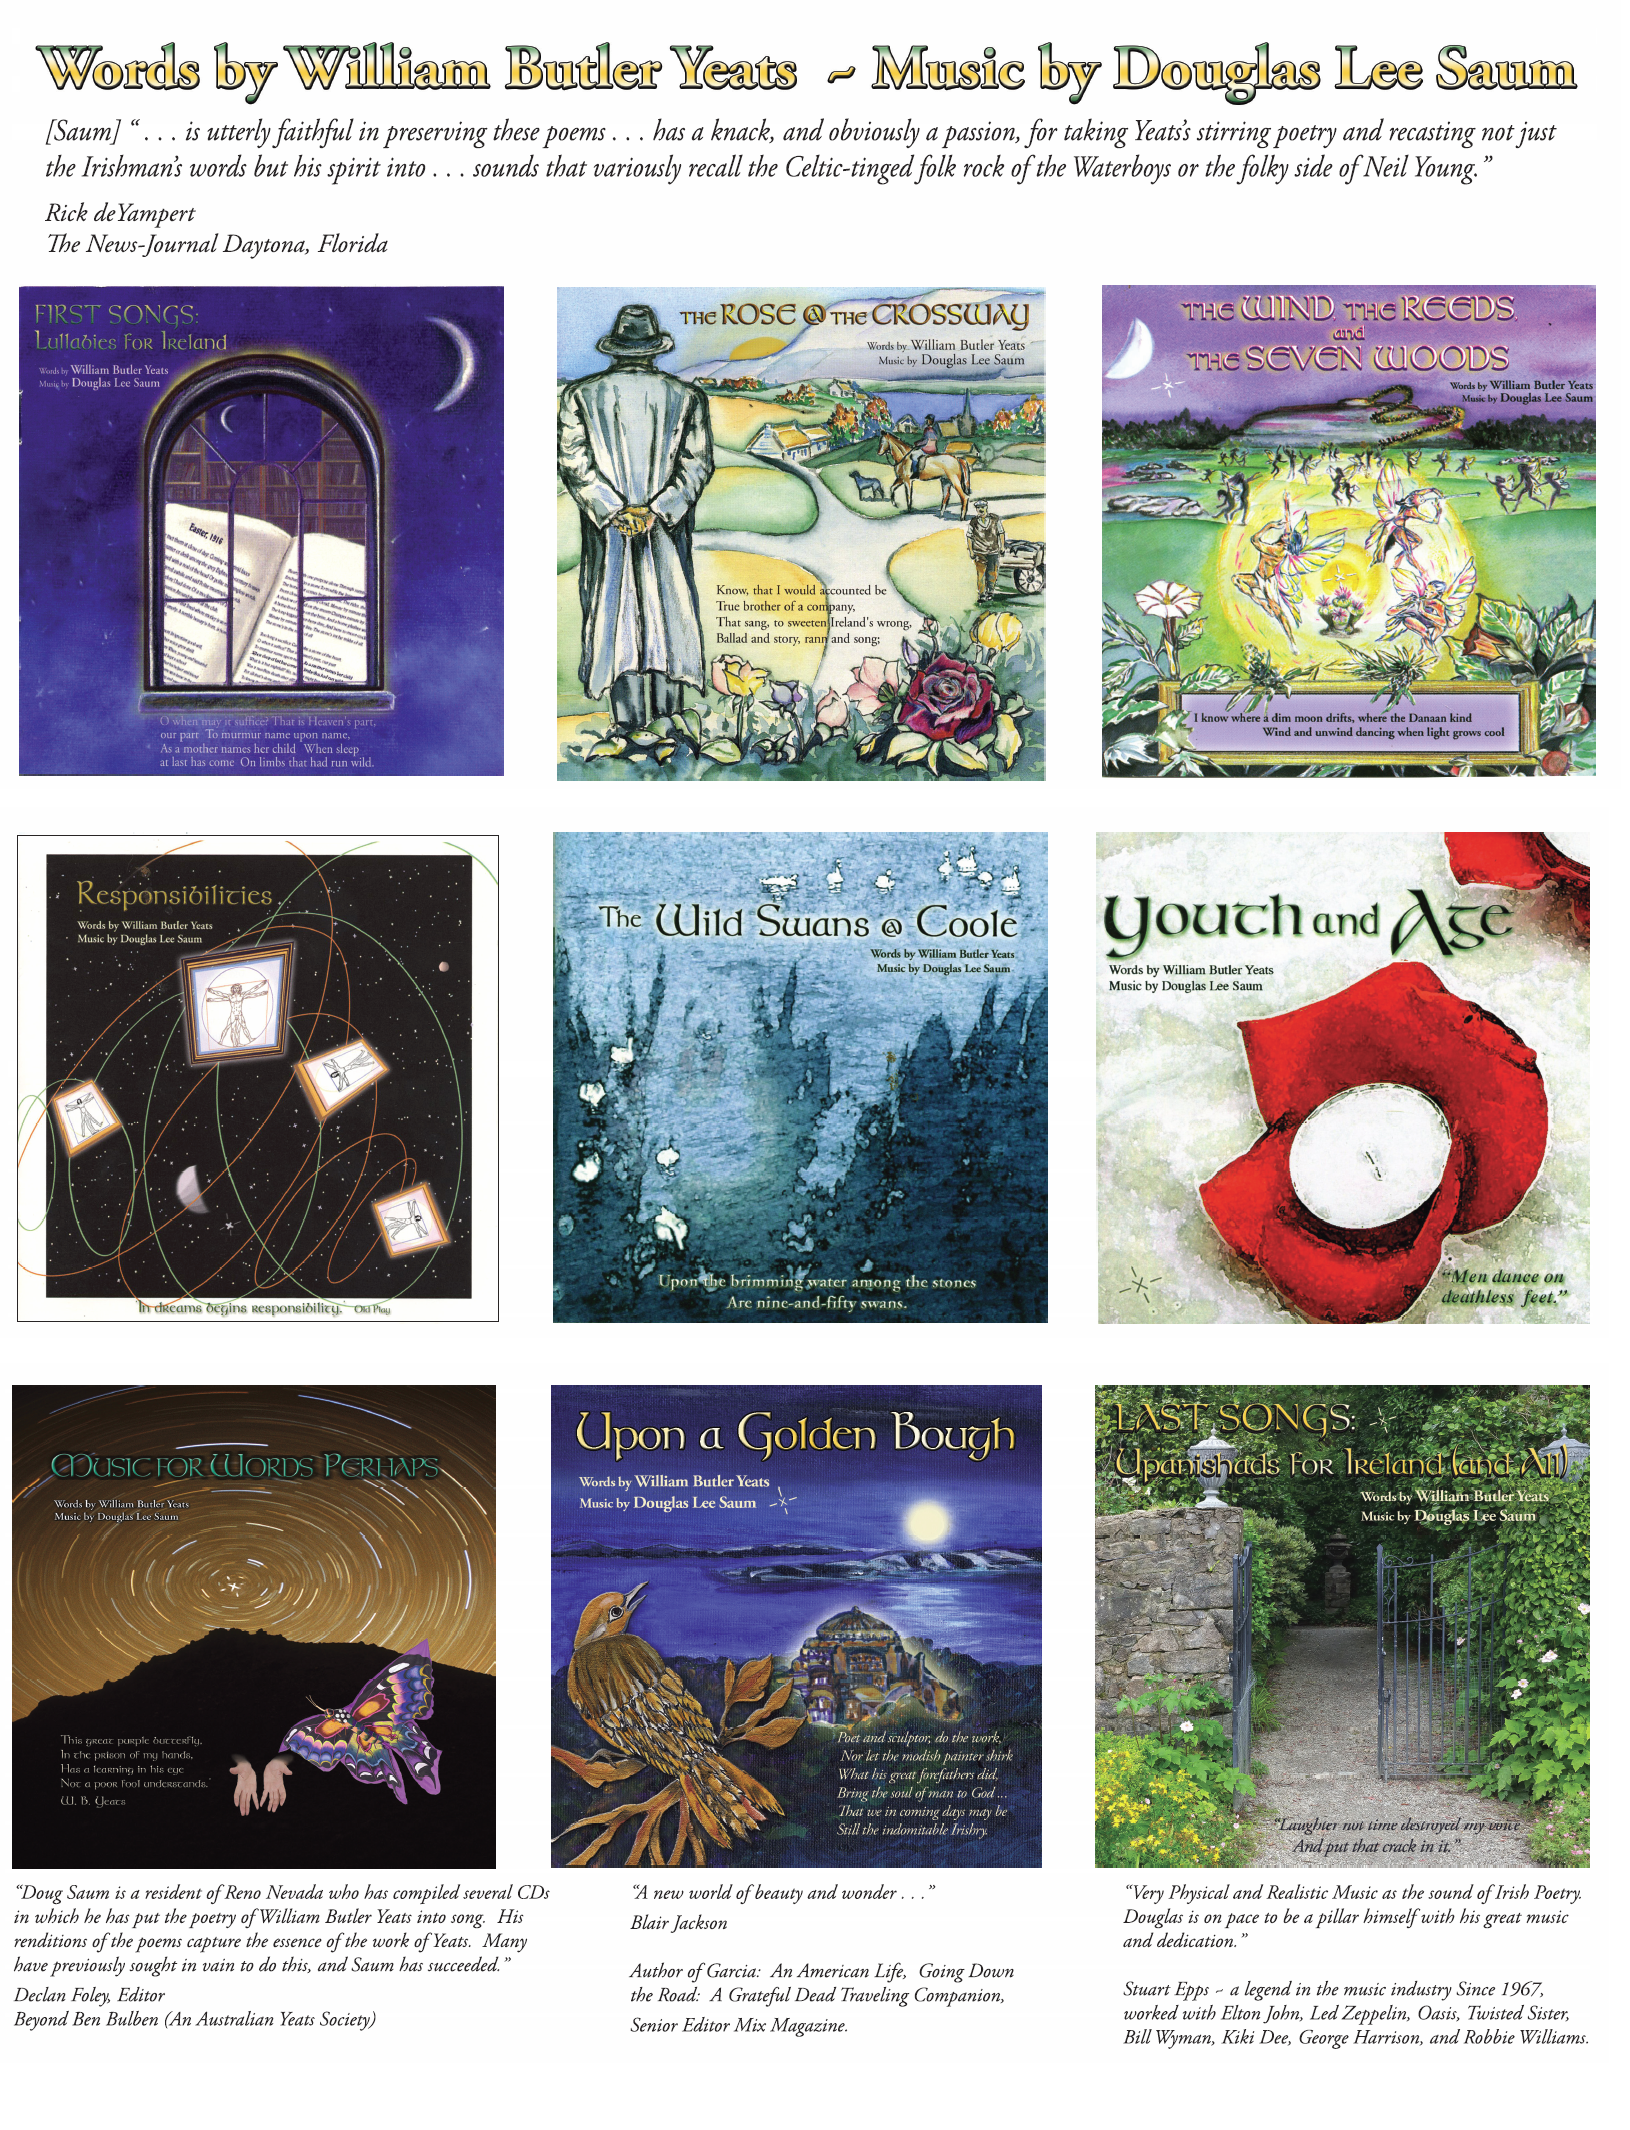 Poster image of Douglas Lee Saum's CDs